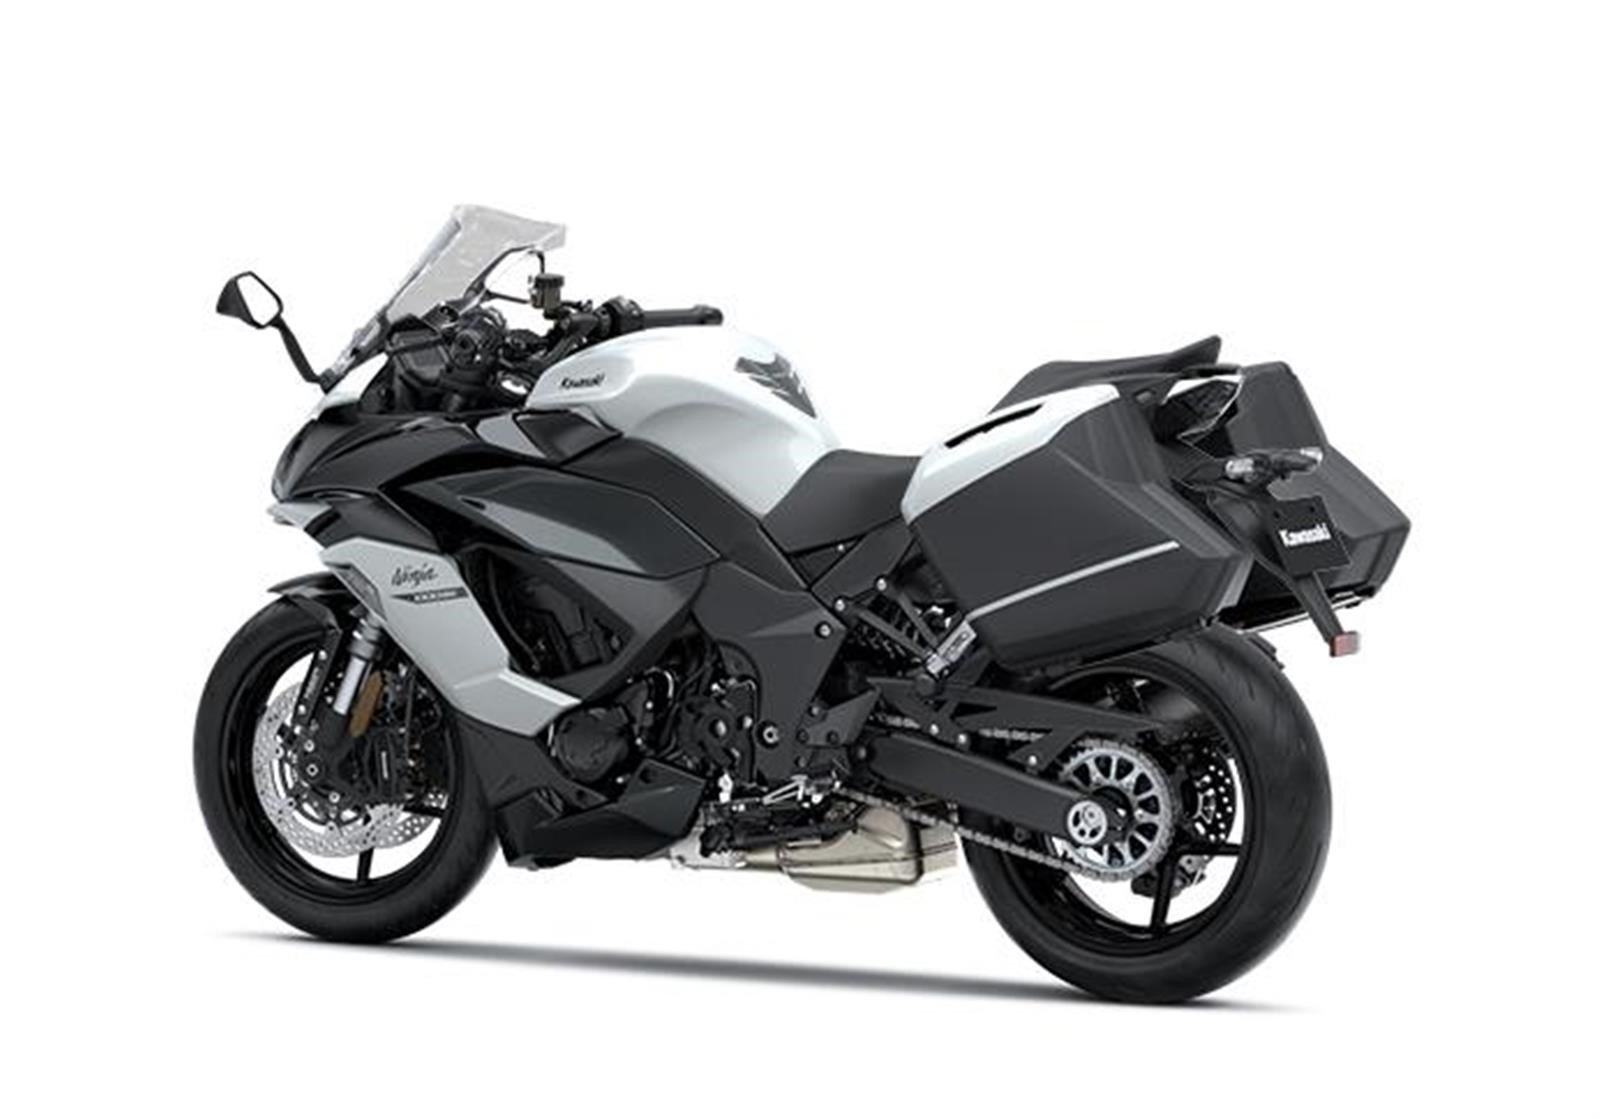 New 2020 Kawasaki Ninja 1000 SX TOURER**FREE DELIVERY** For Sale (picture 2 of 6)